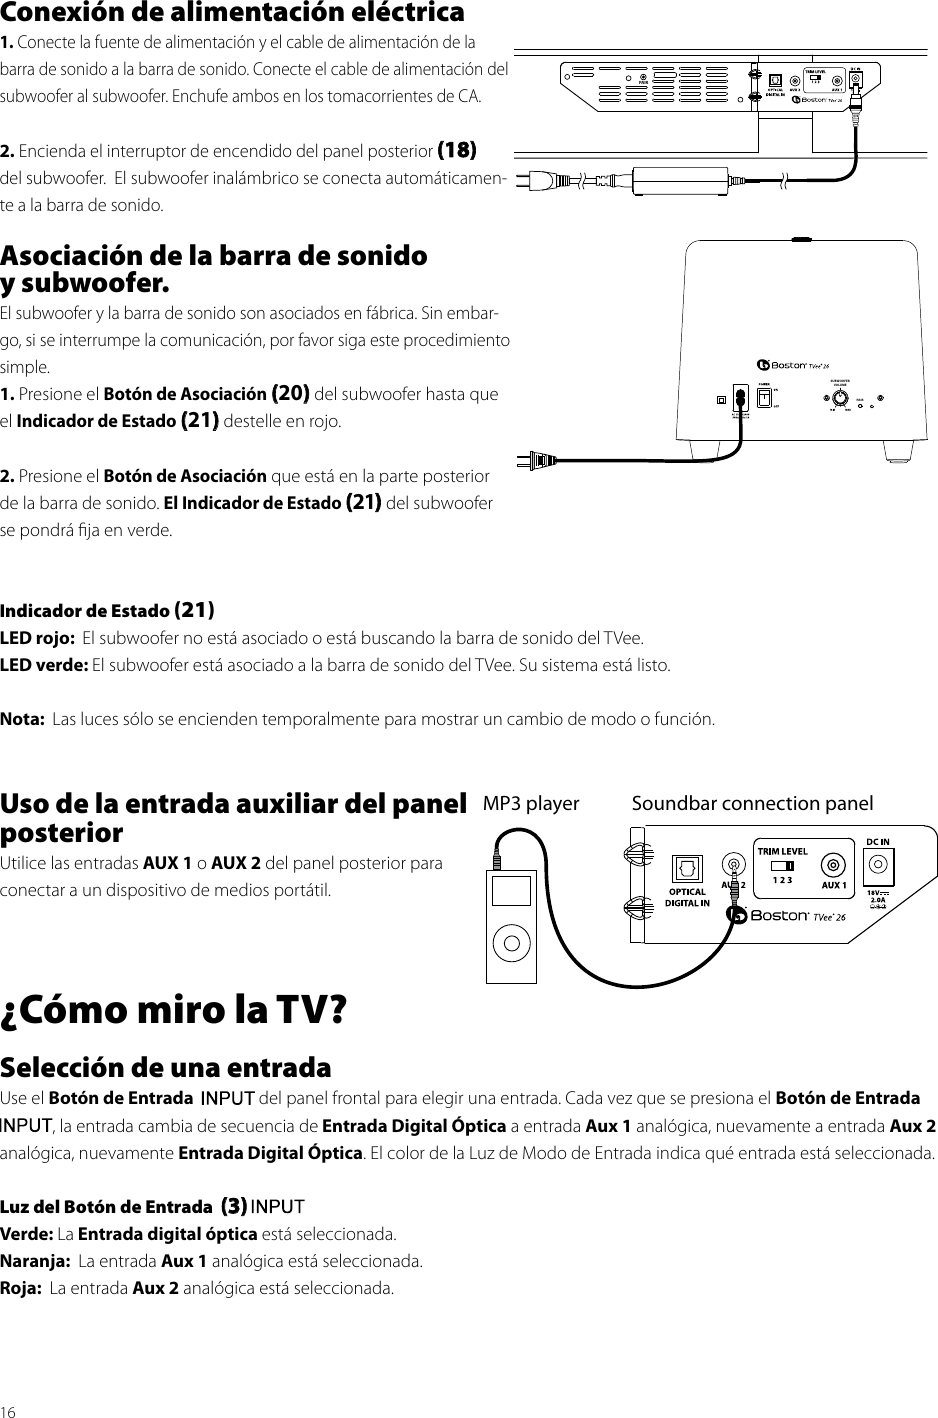 Boston Acoustics Tvee 26 Users Manual 16conexin De Alimentacin Elctrica1 Conecte La Fuente Y El Cable